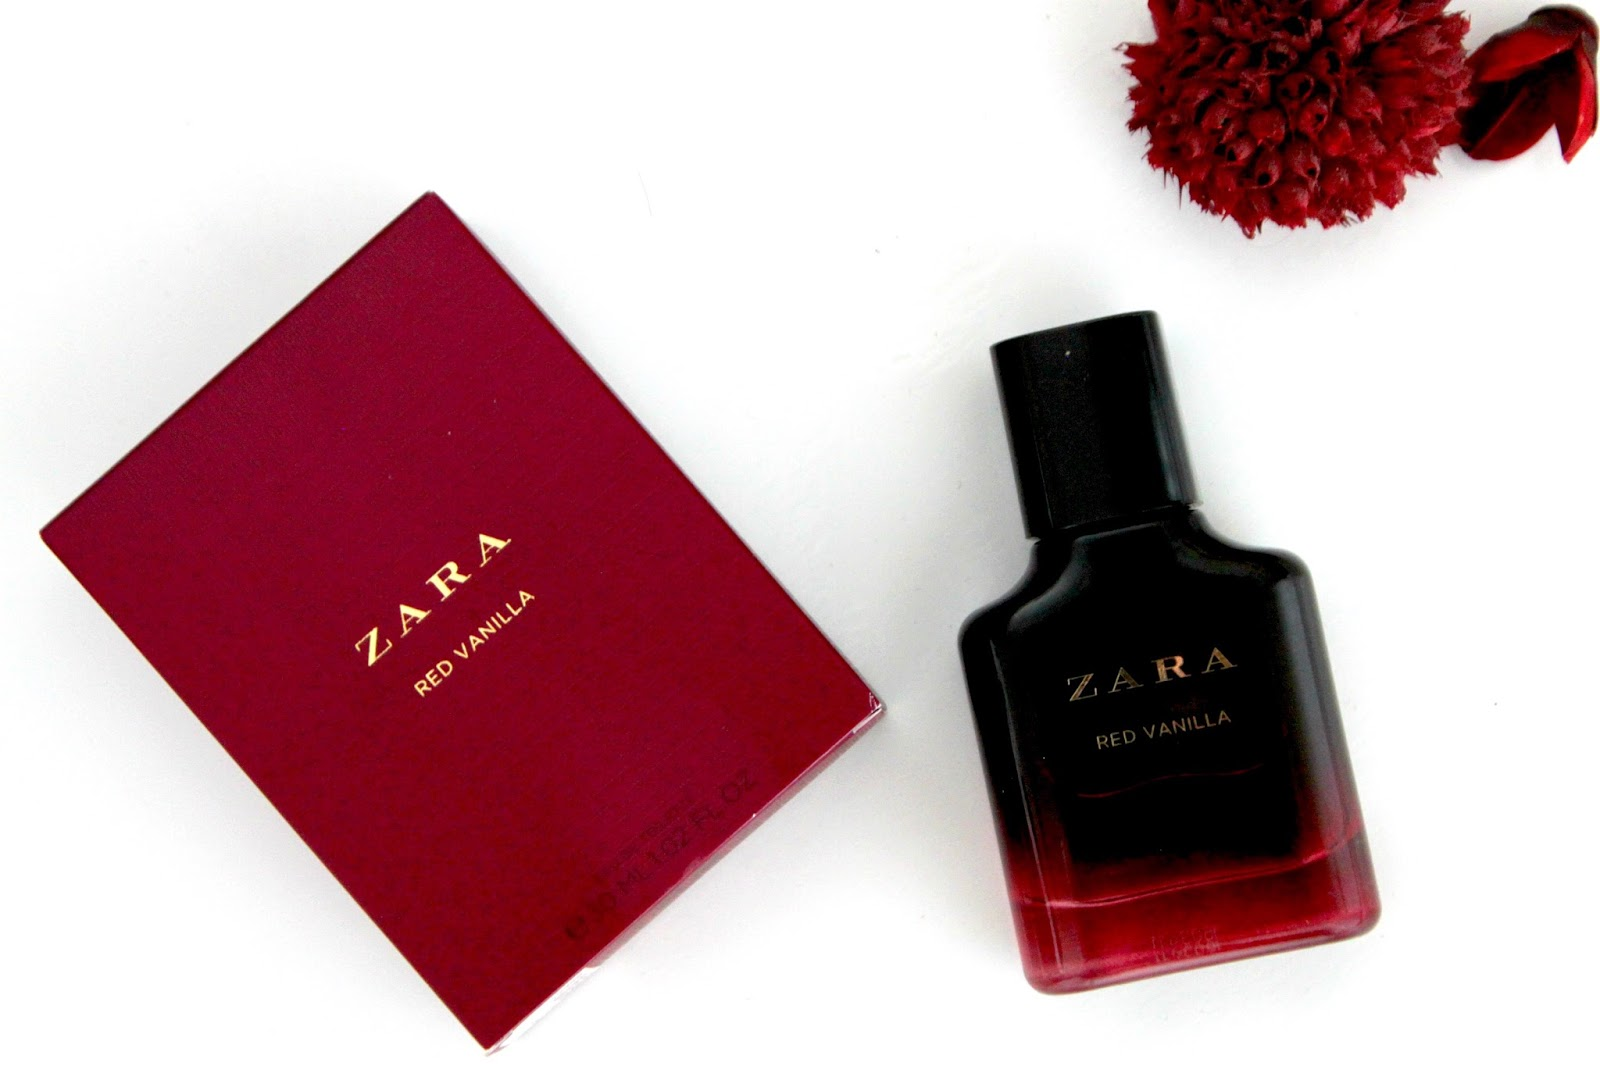 Zara Red Vanilla Eau de Toilette Perfume Fragrance Blog Review